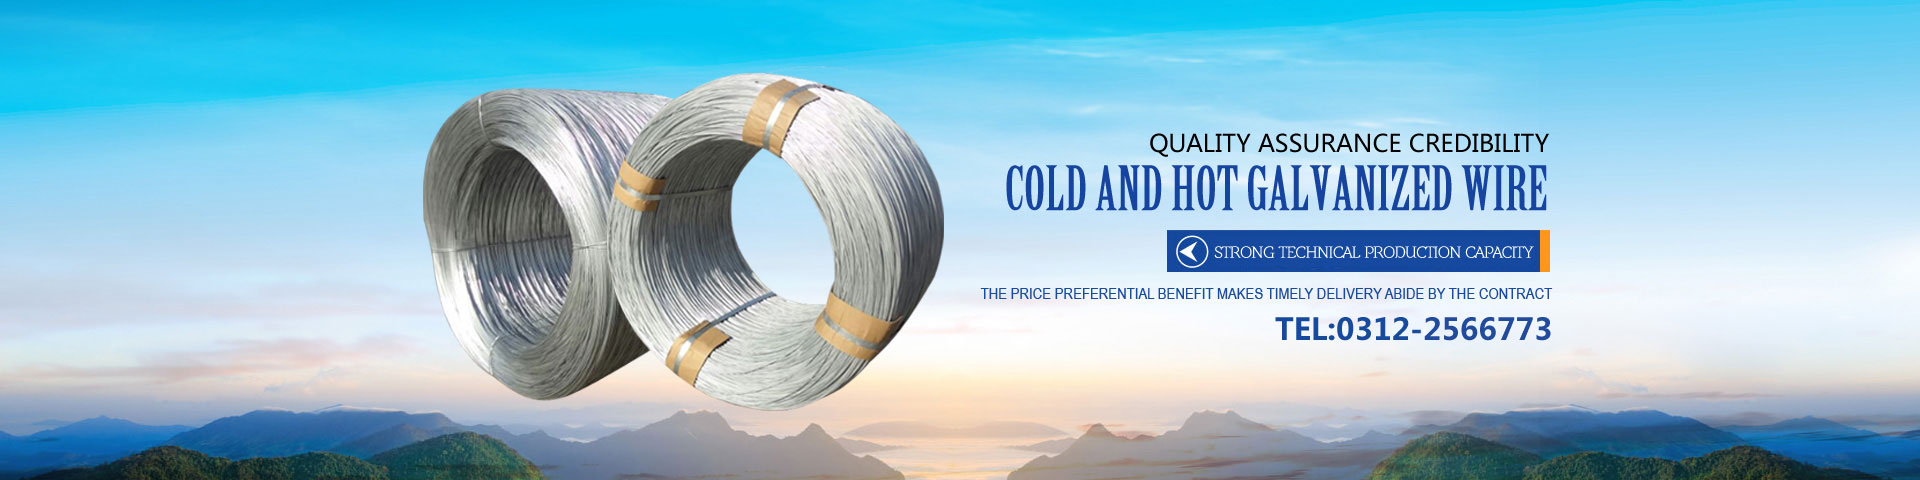 Cold and hot galvanized wire